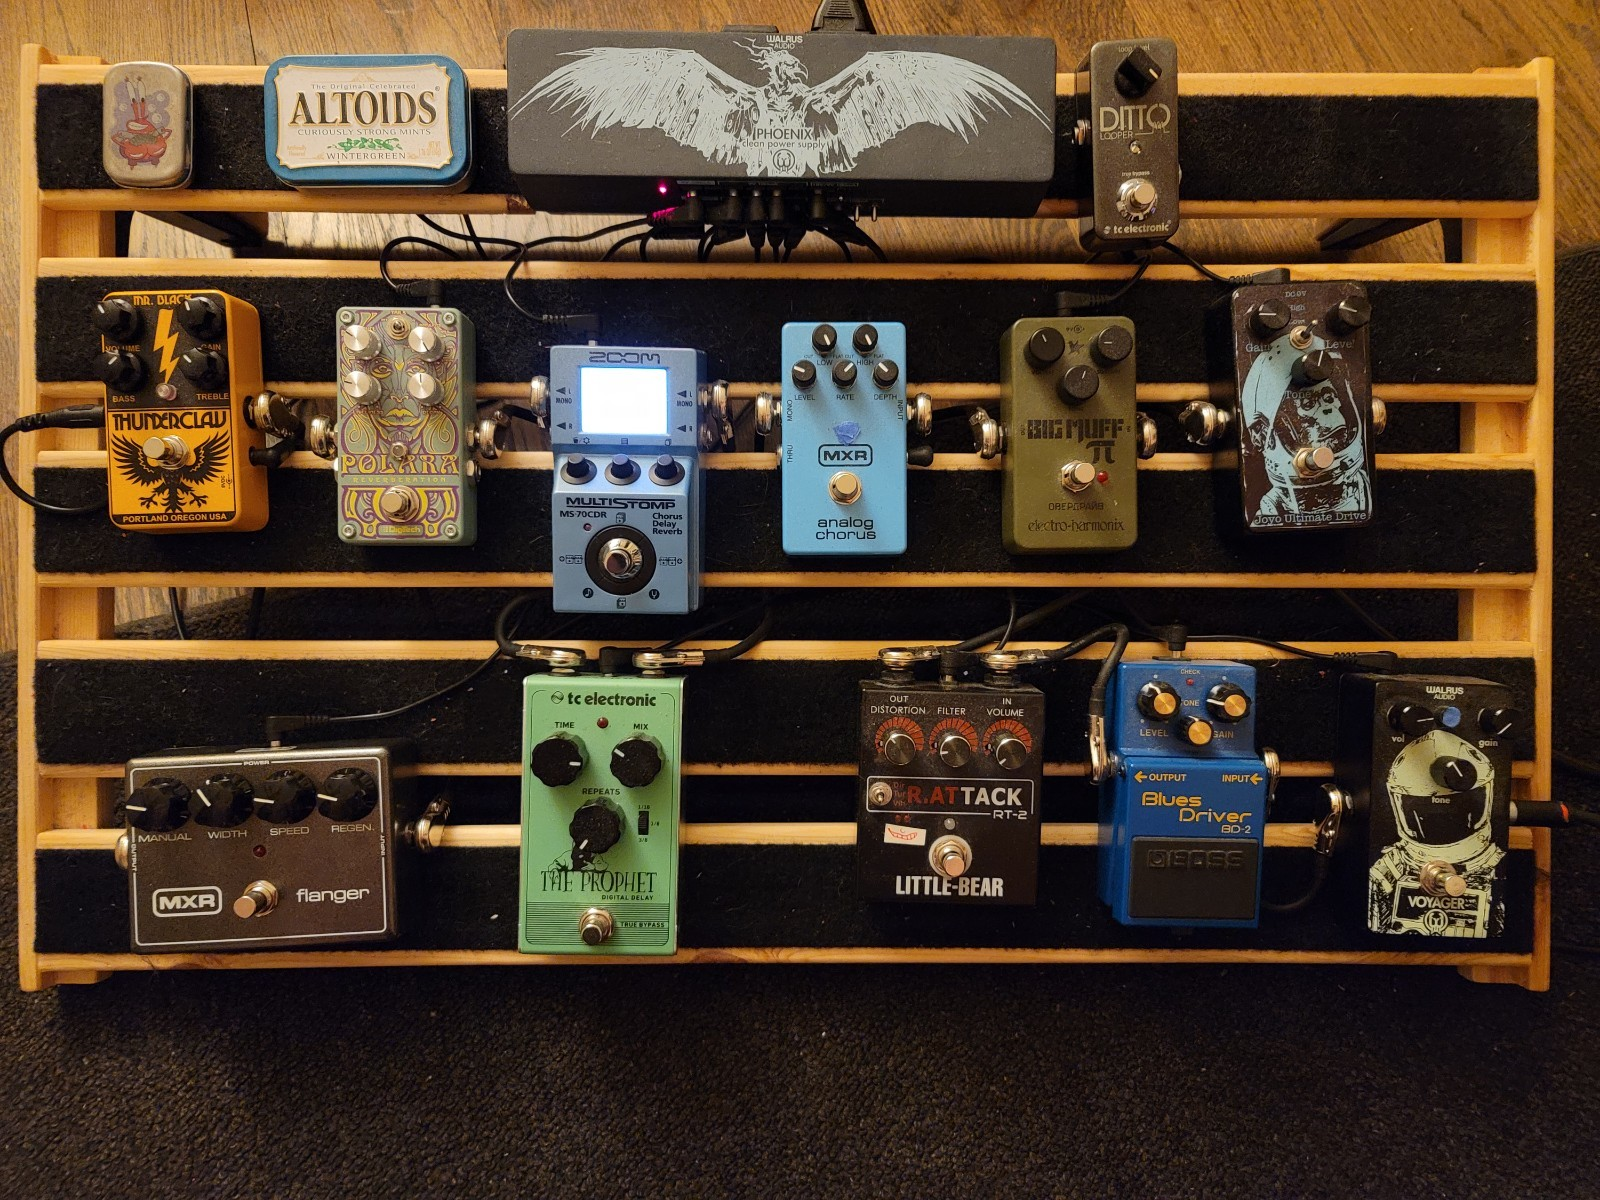 Photo of MXR M117R Flanger and more gear in a pedalboard and signal chain